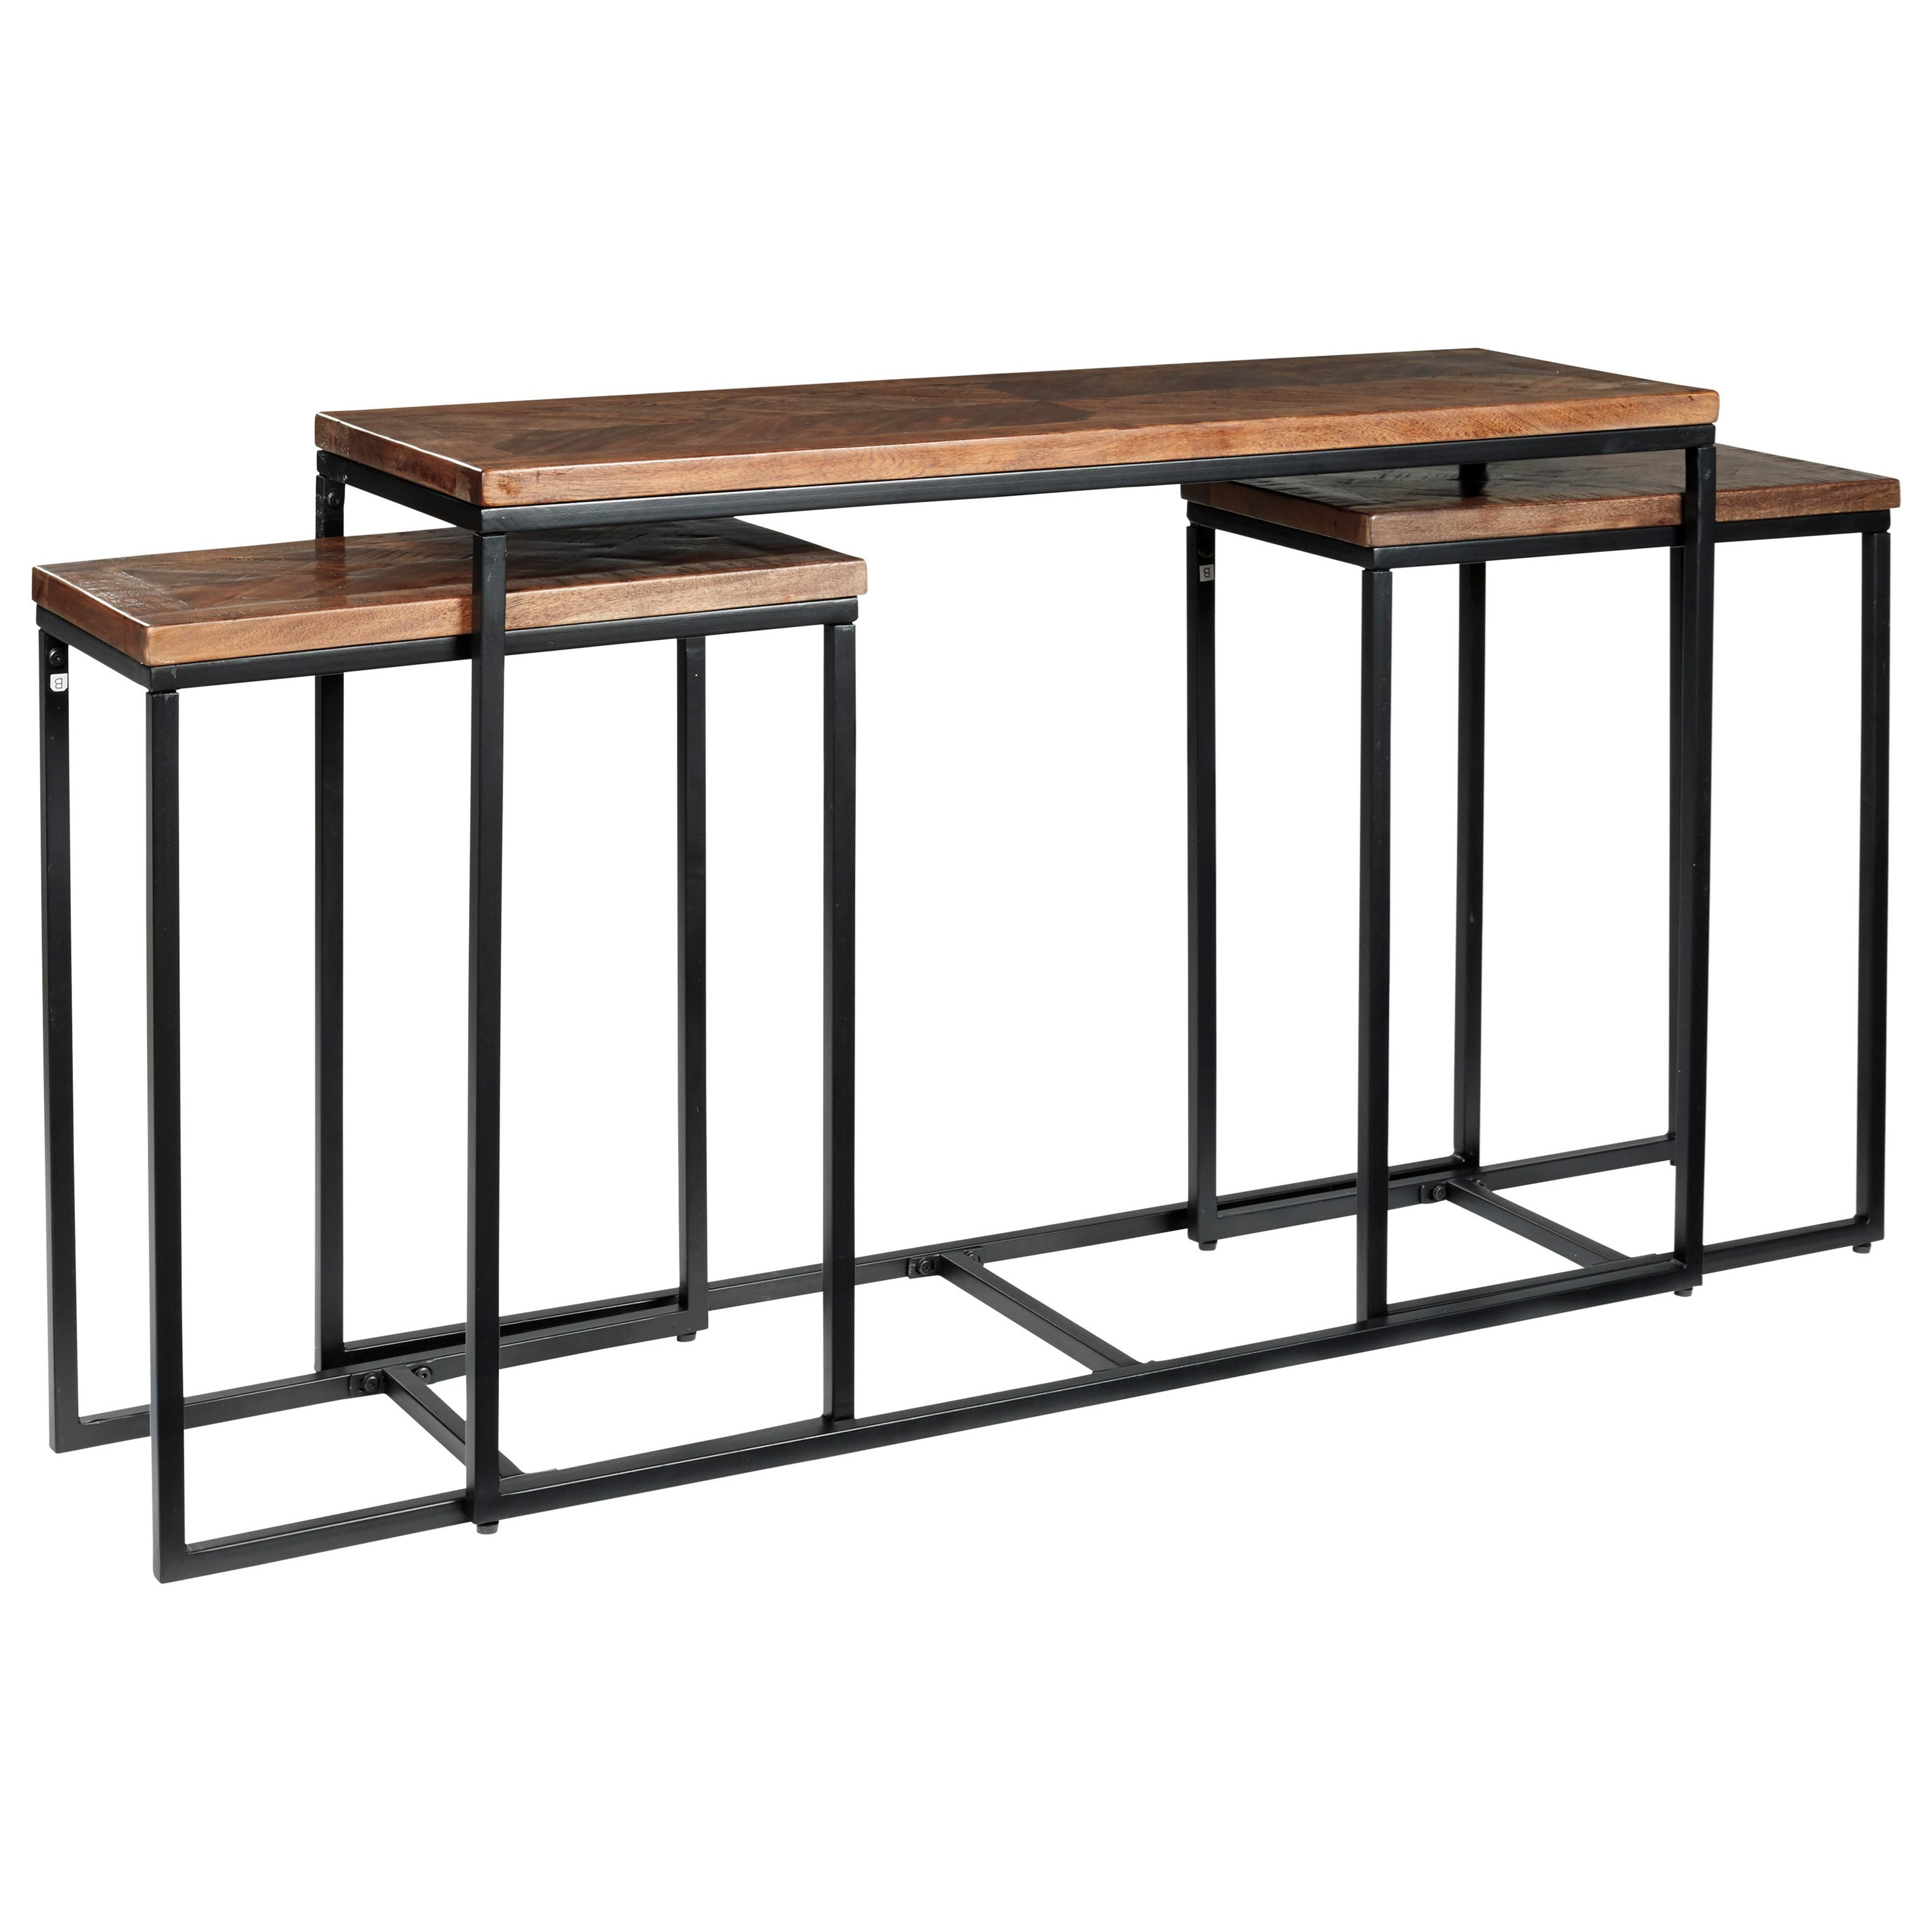 Nesting 3-Piece Console Table Set with Herringbone Design Tops